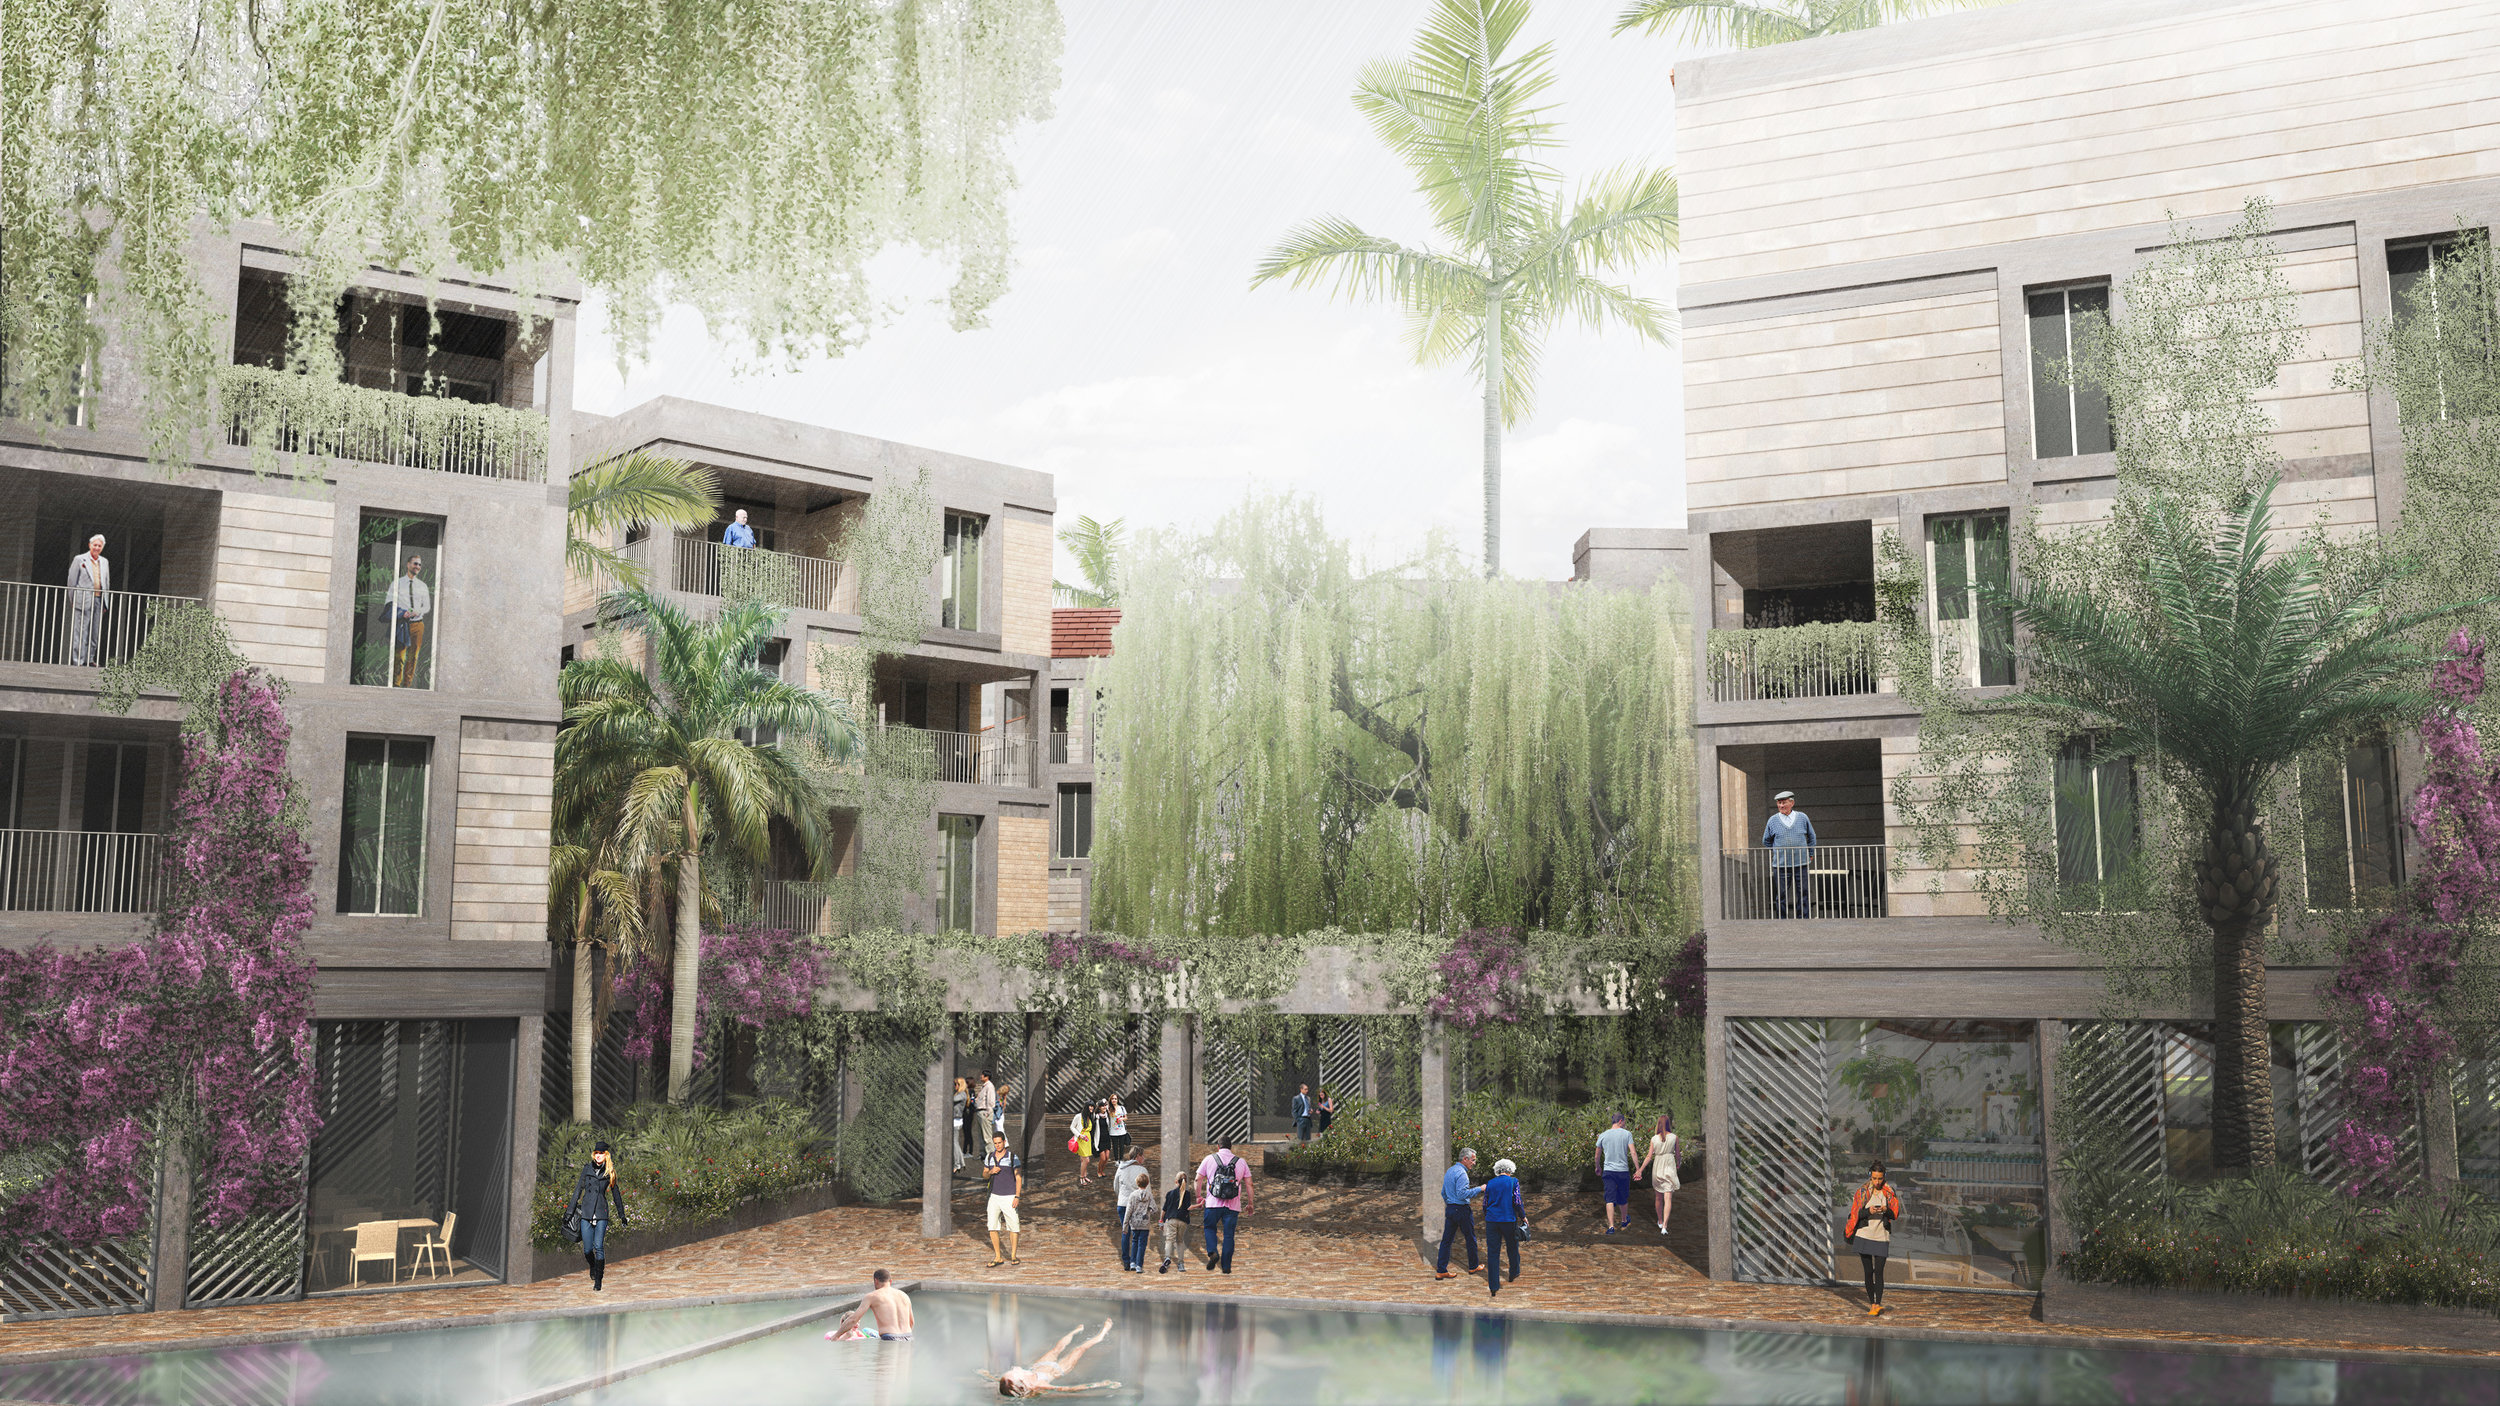 Our new scheme in San Miguel de Allende is in design phase, soon to be filed in for planning - in collaboration with RVdG